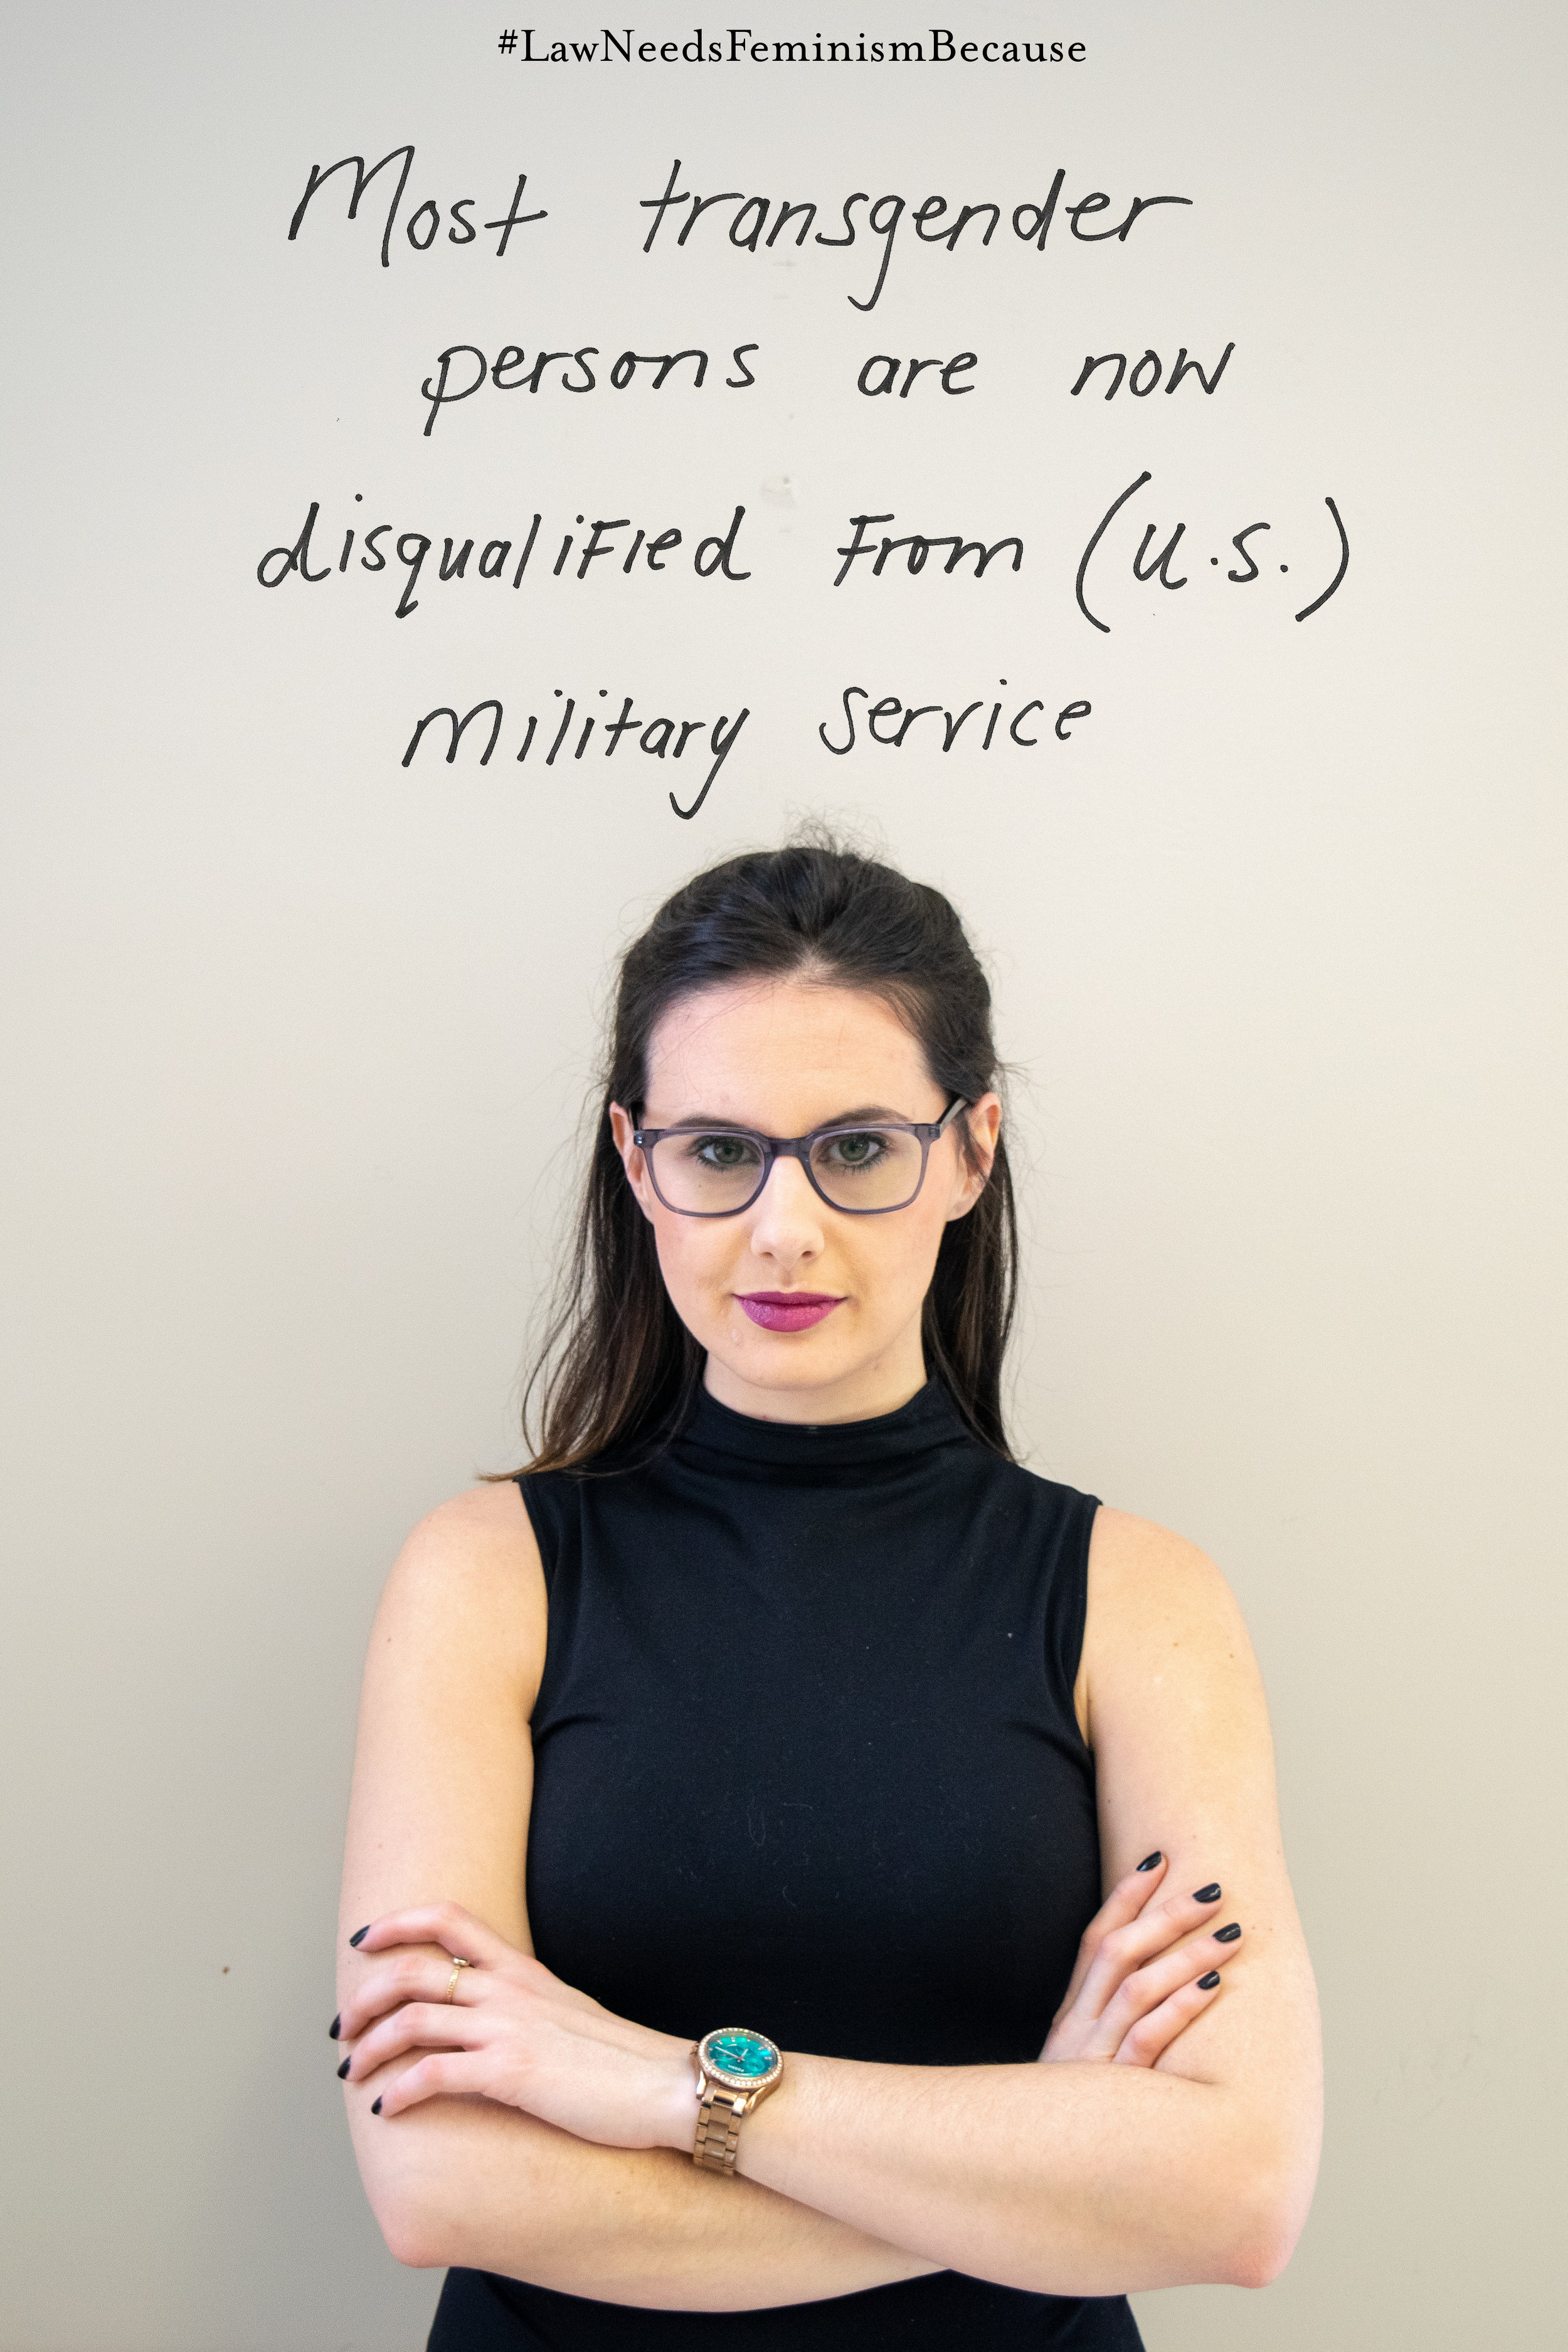 """Law Needs Feminism Because  """"Most transgender persons are now disqualified from (U.S.) military service)"""""""